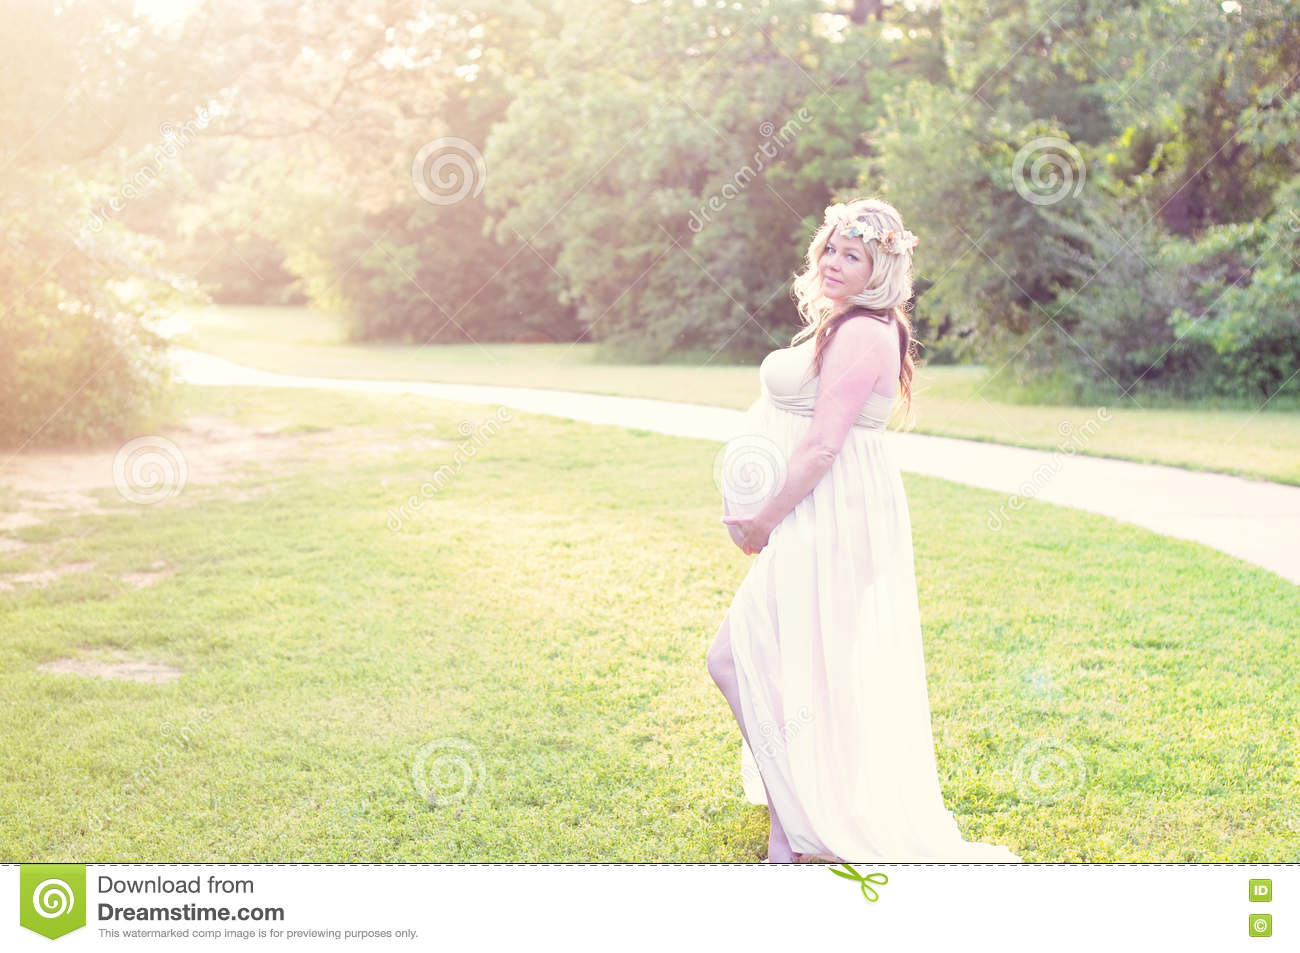 bf04e33237fbb Beautiful Pregnant Woman In A Sheer Dress At A Park With Copyspace ...